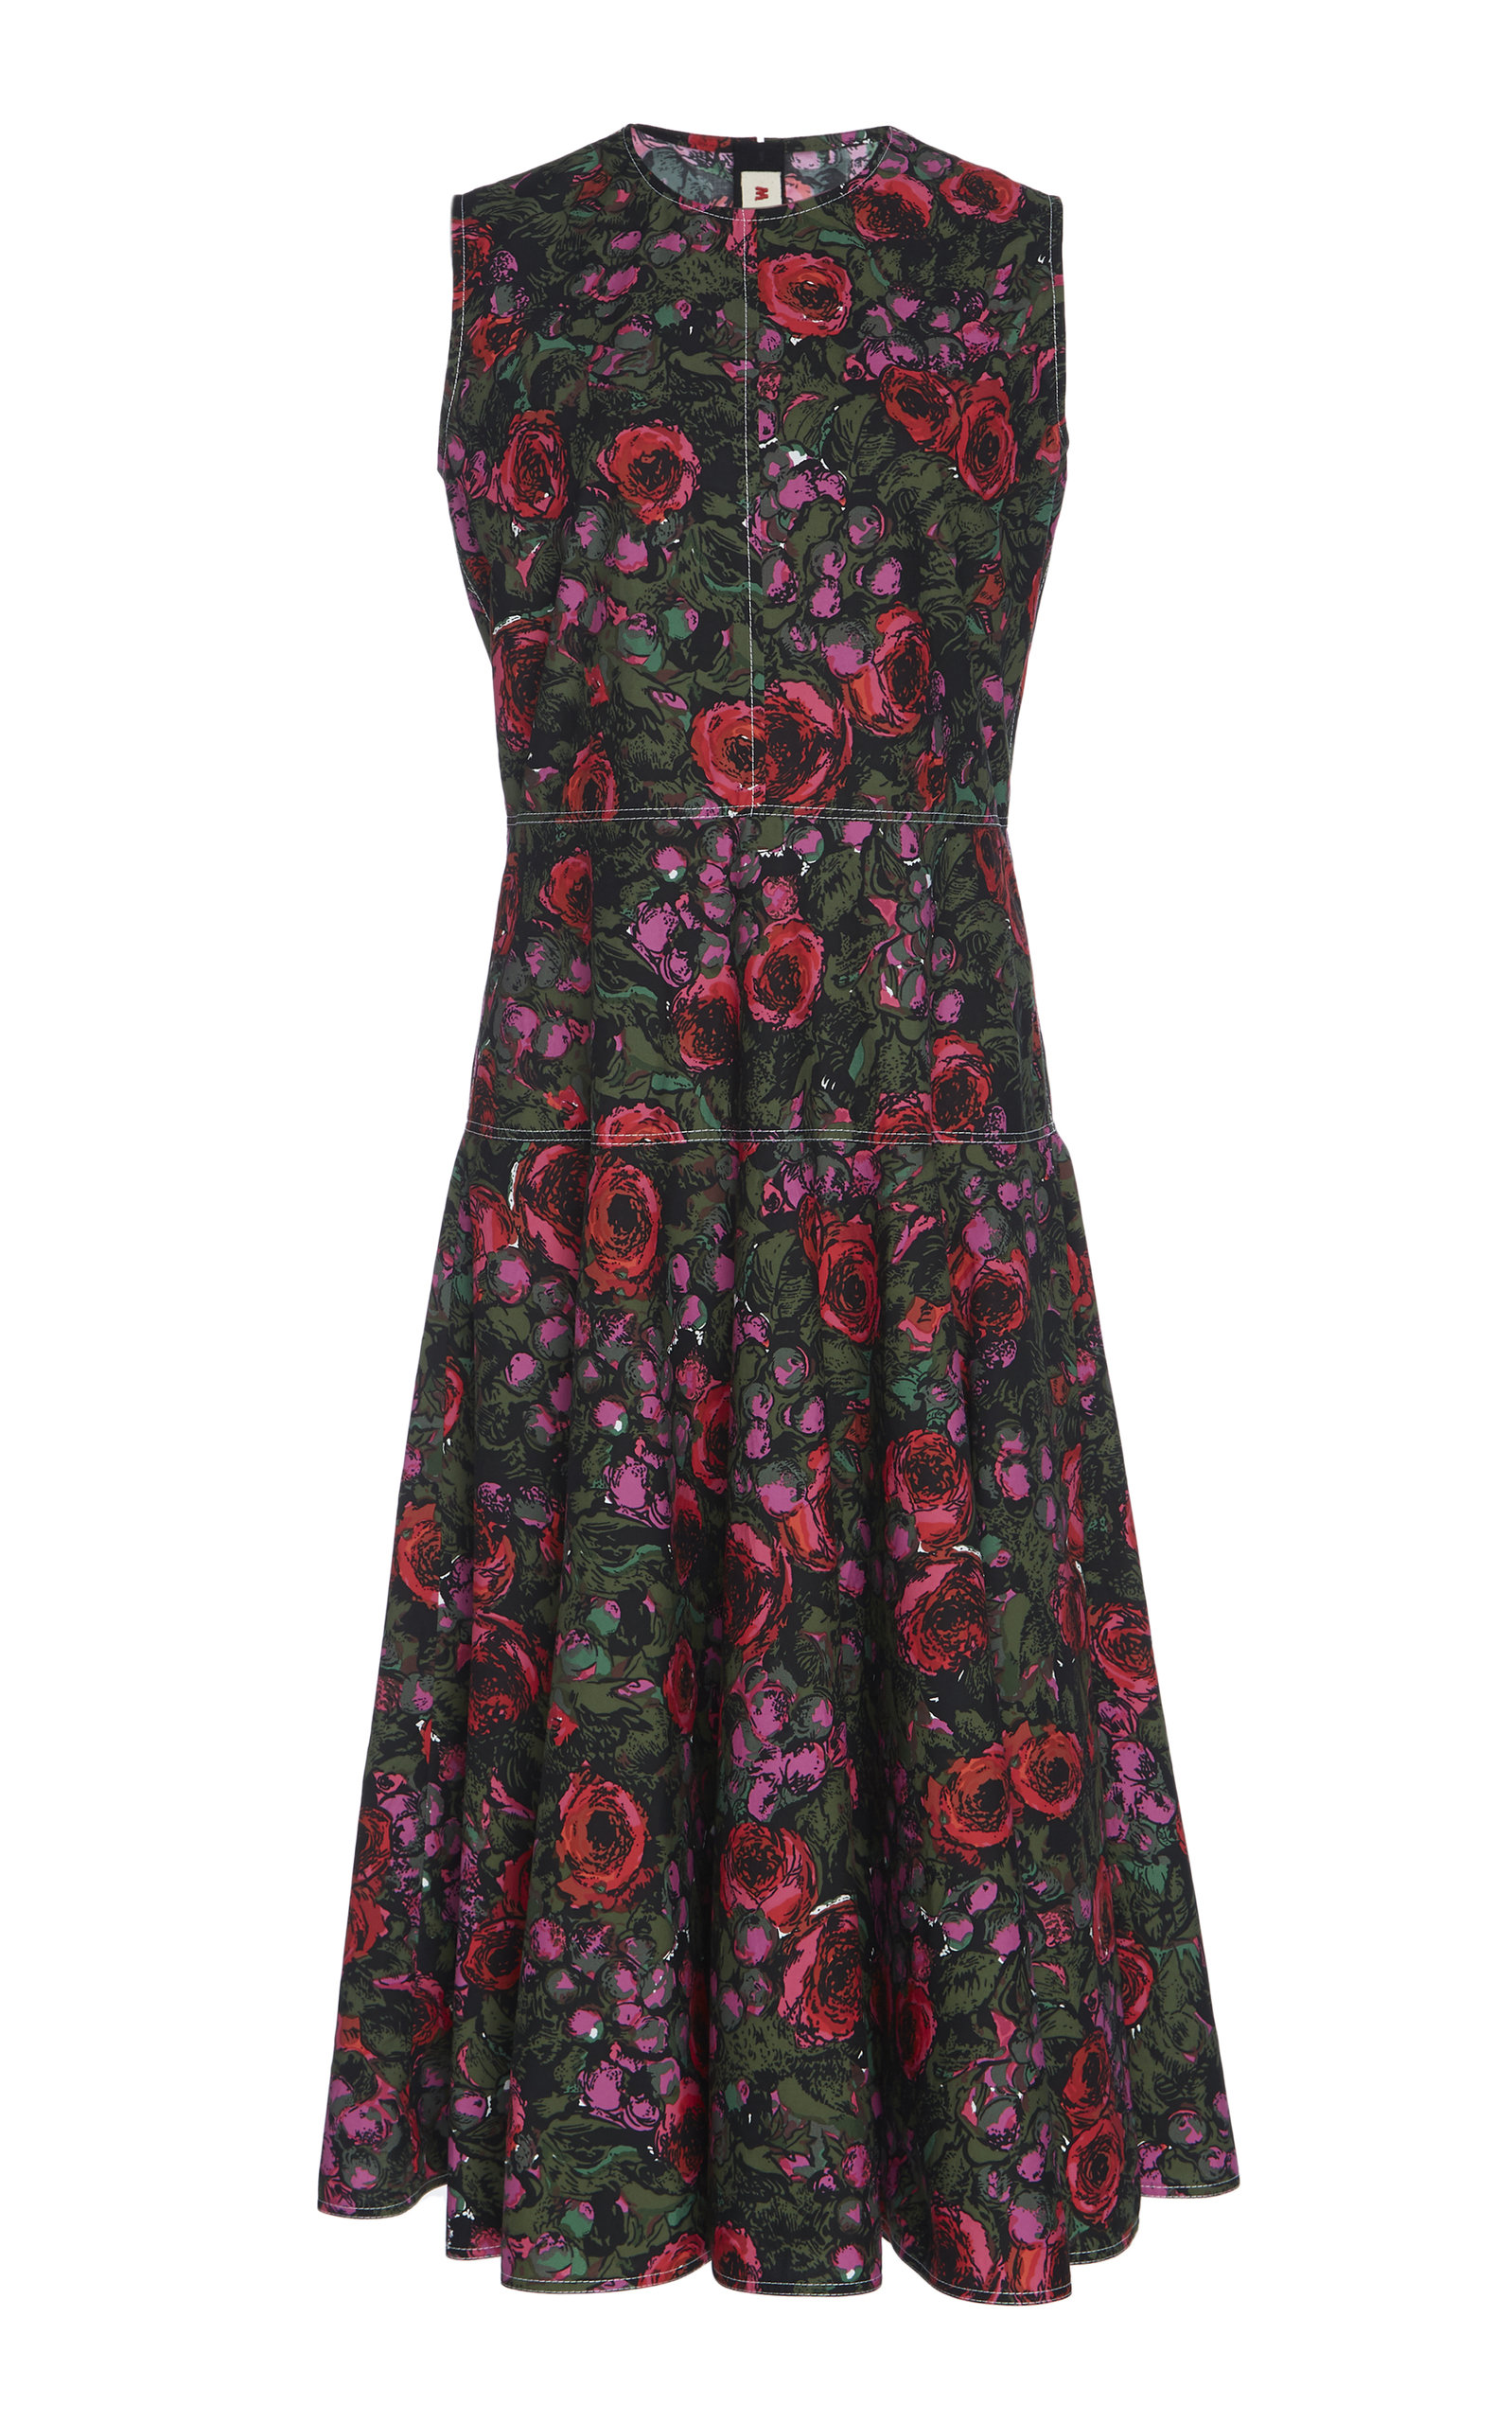 Buy Marni Floral Cotton Flared Dress online, shop Marni at the best price